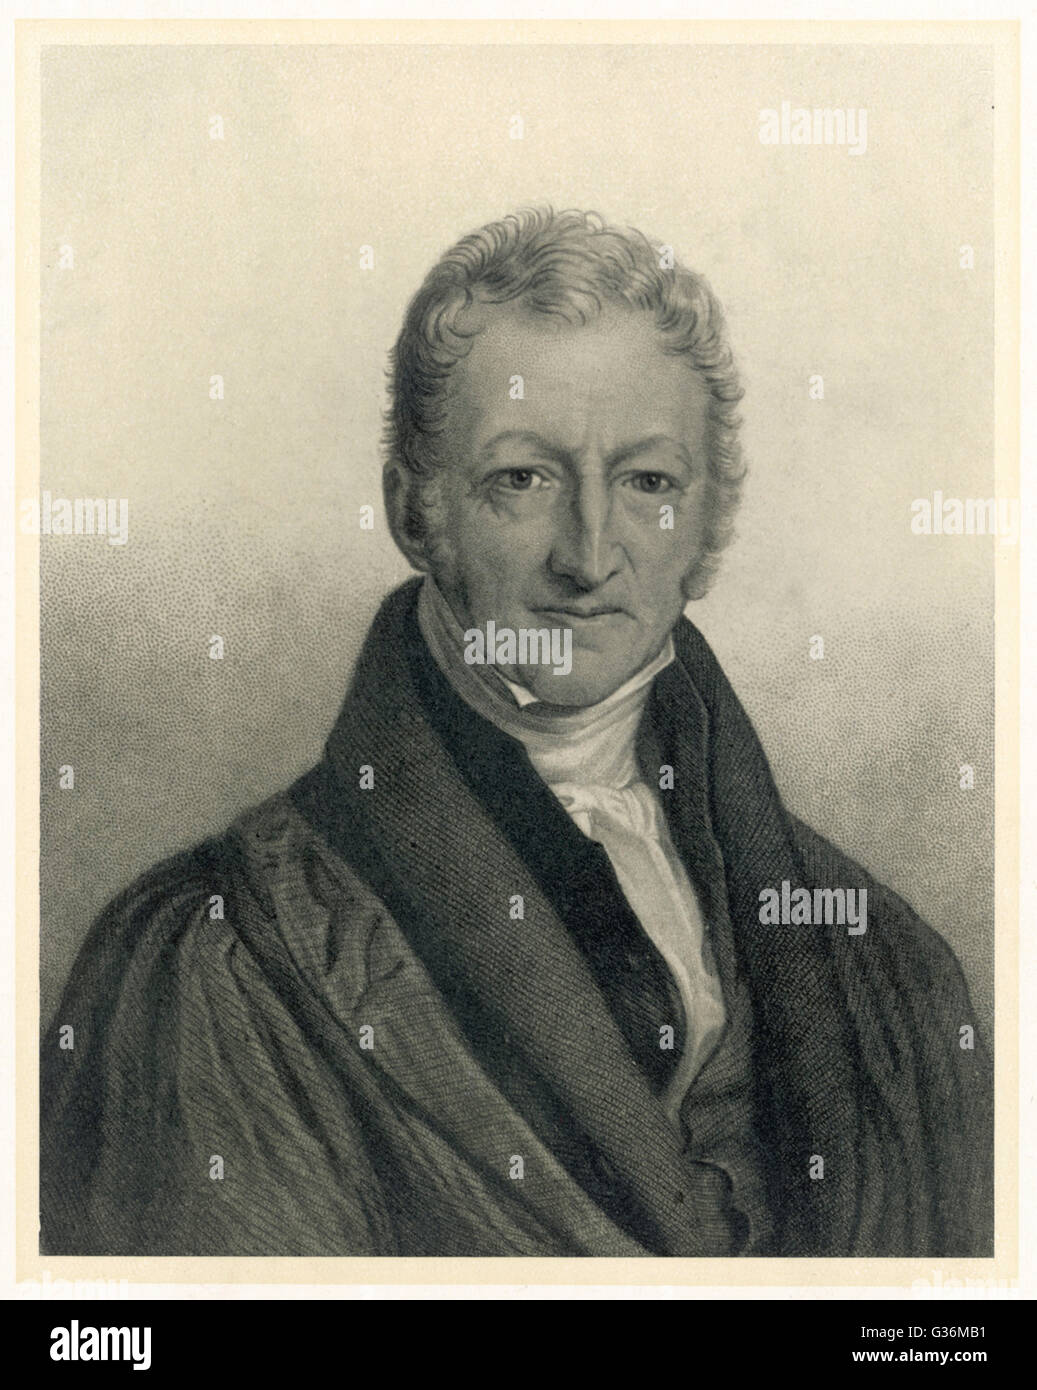 Thomas Robert Malthus (1766-1834) philosopher, known for study  of population - Stock Image